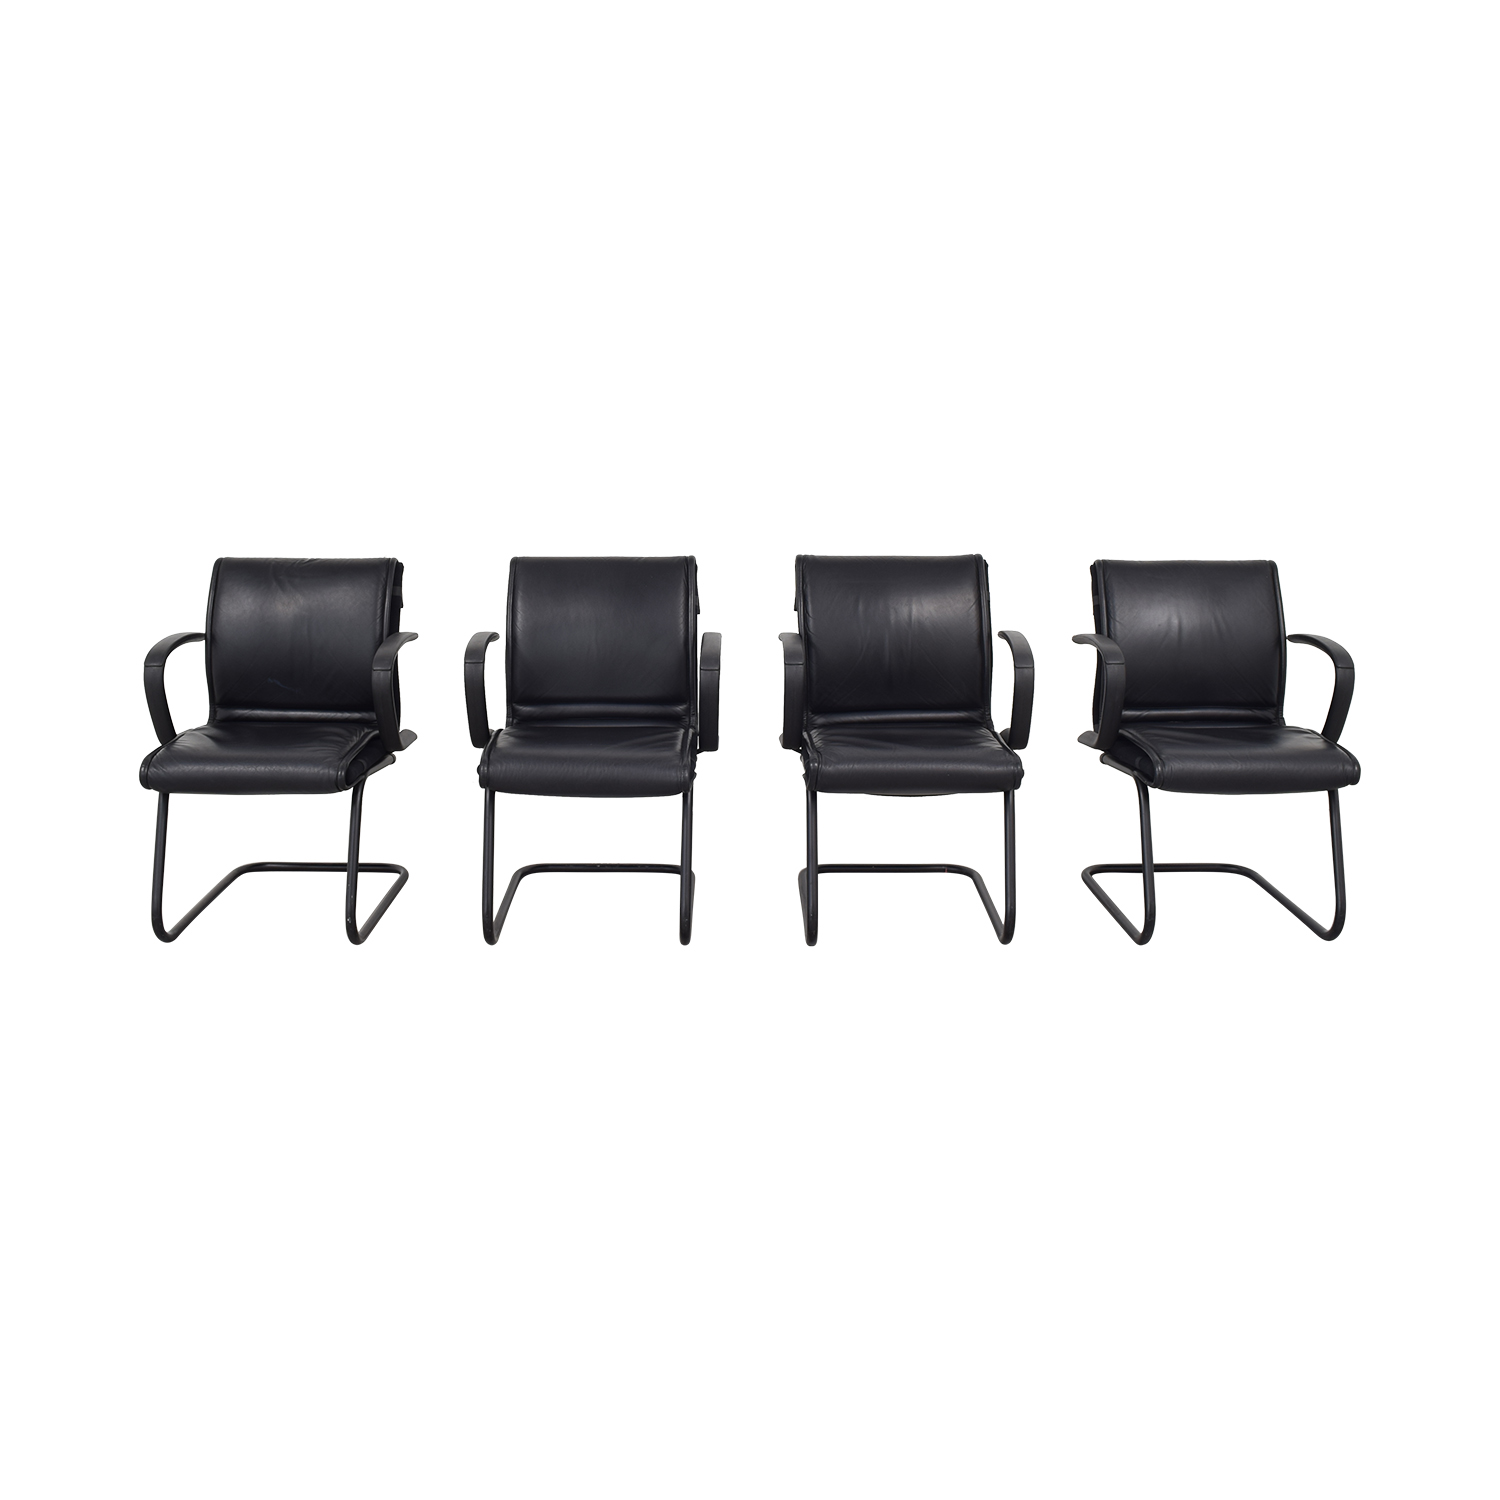 KnollStudio Knoll Studio-Inspired Chairs discount